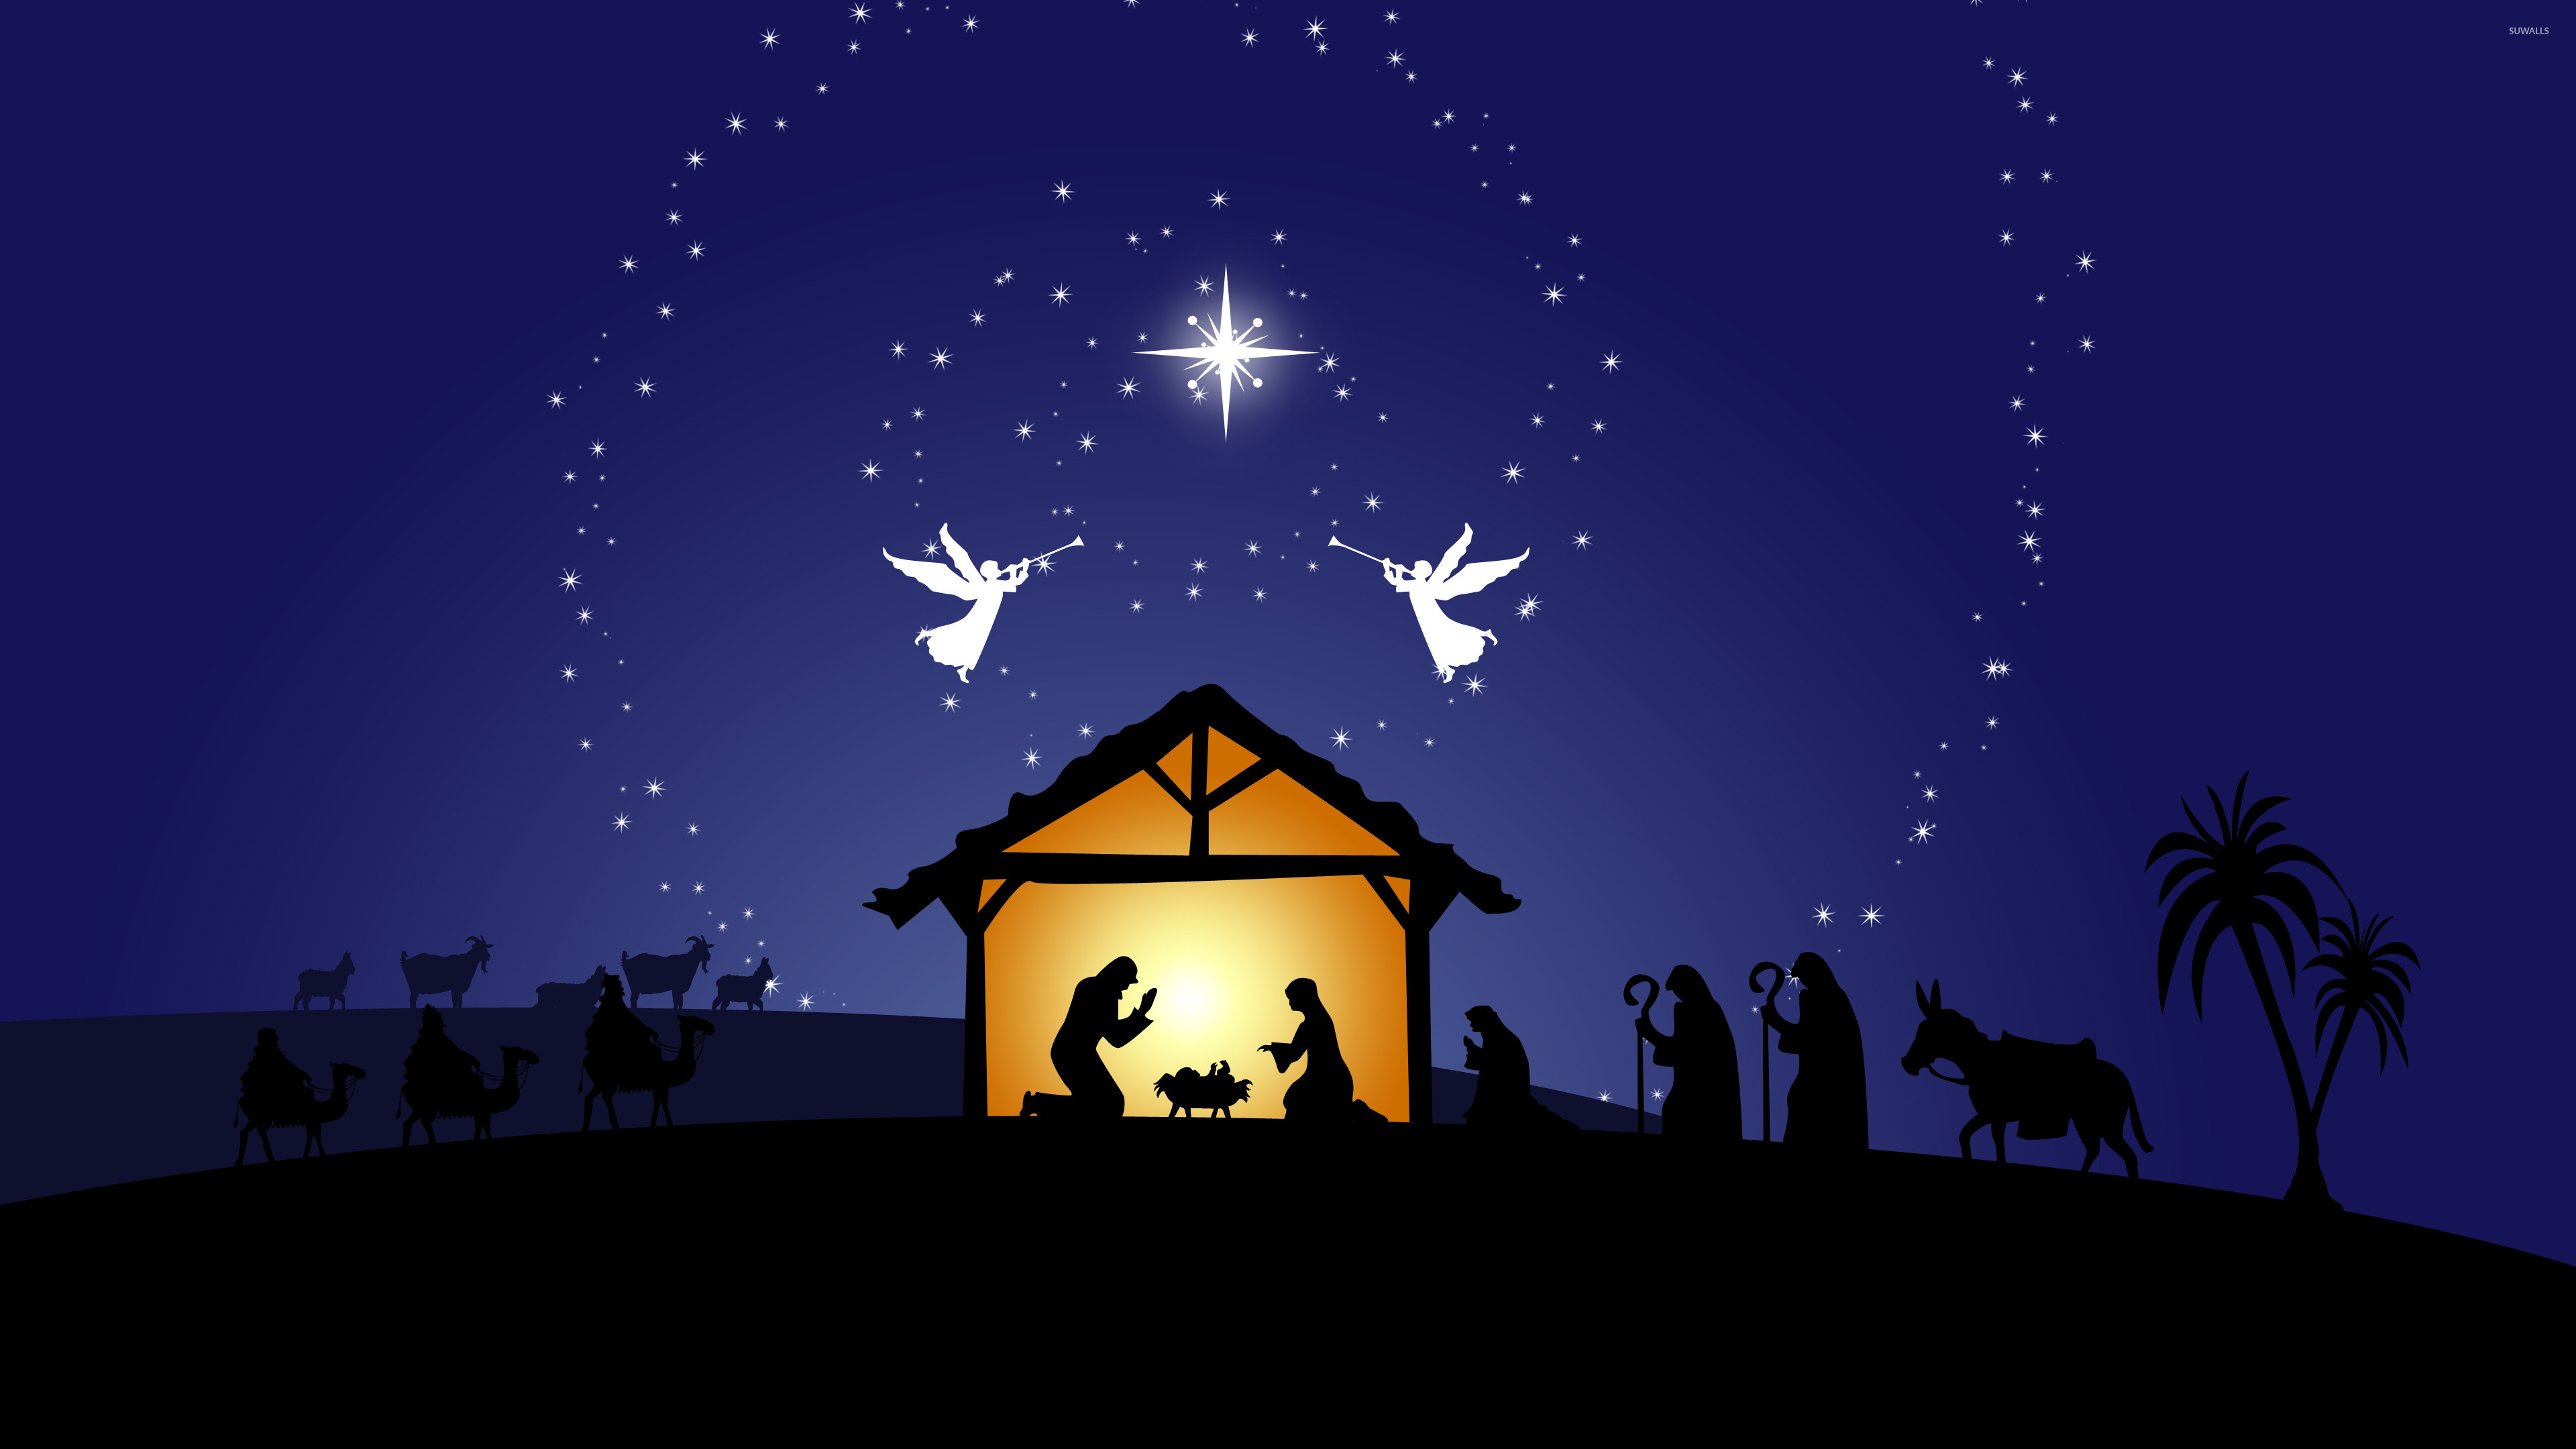 Res: 3840x2160, Nativity scene wallpaper